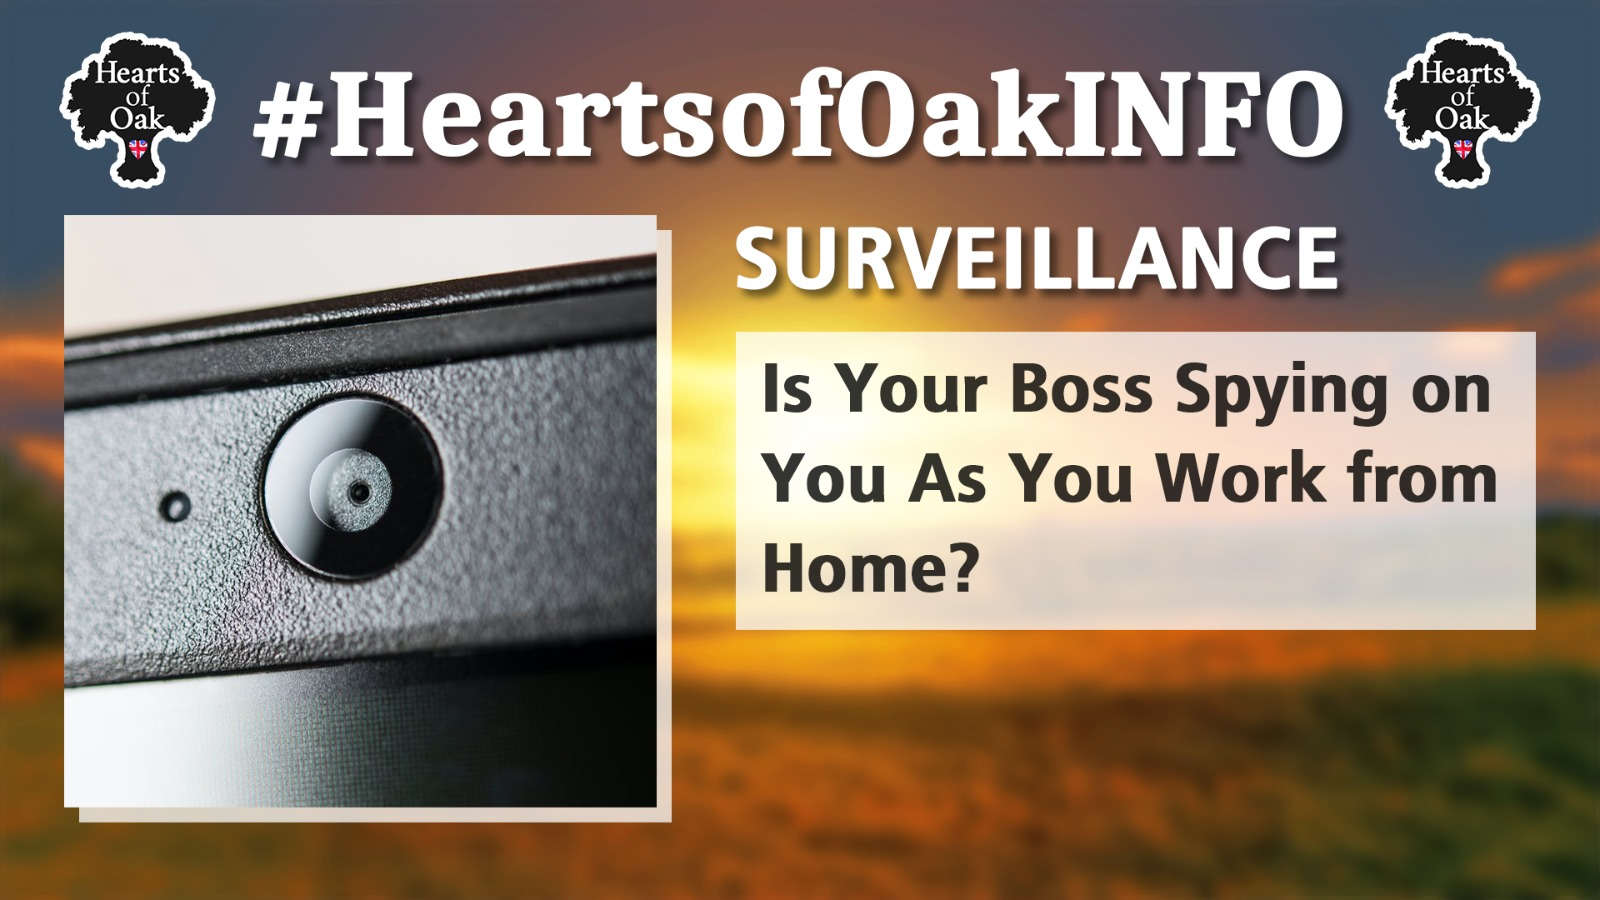 Surveillance: Is Your Boss Spying on You as You Work From Home?